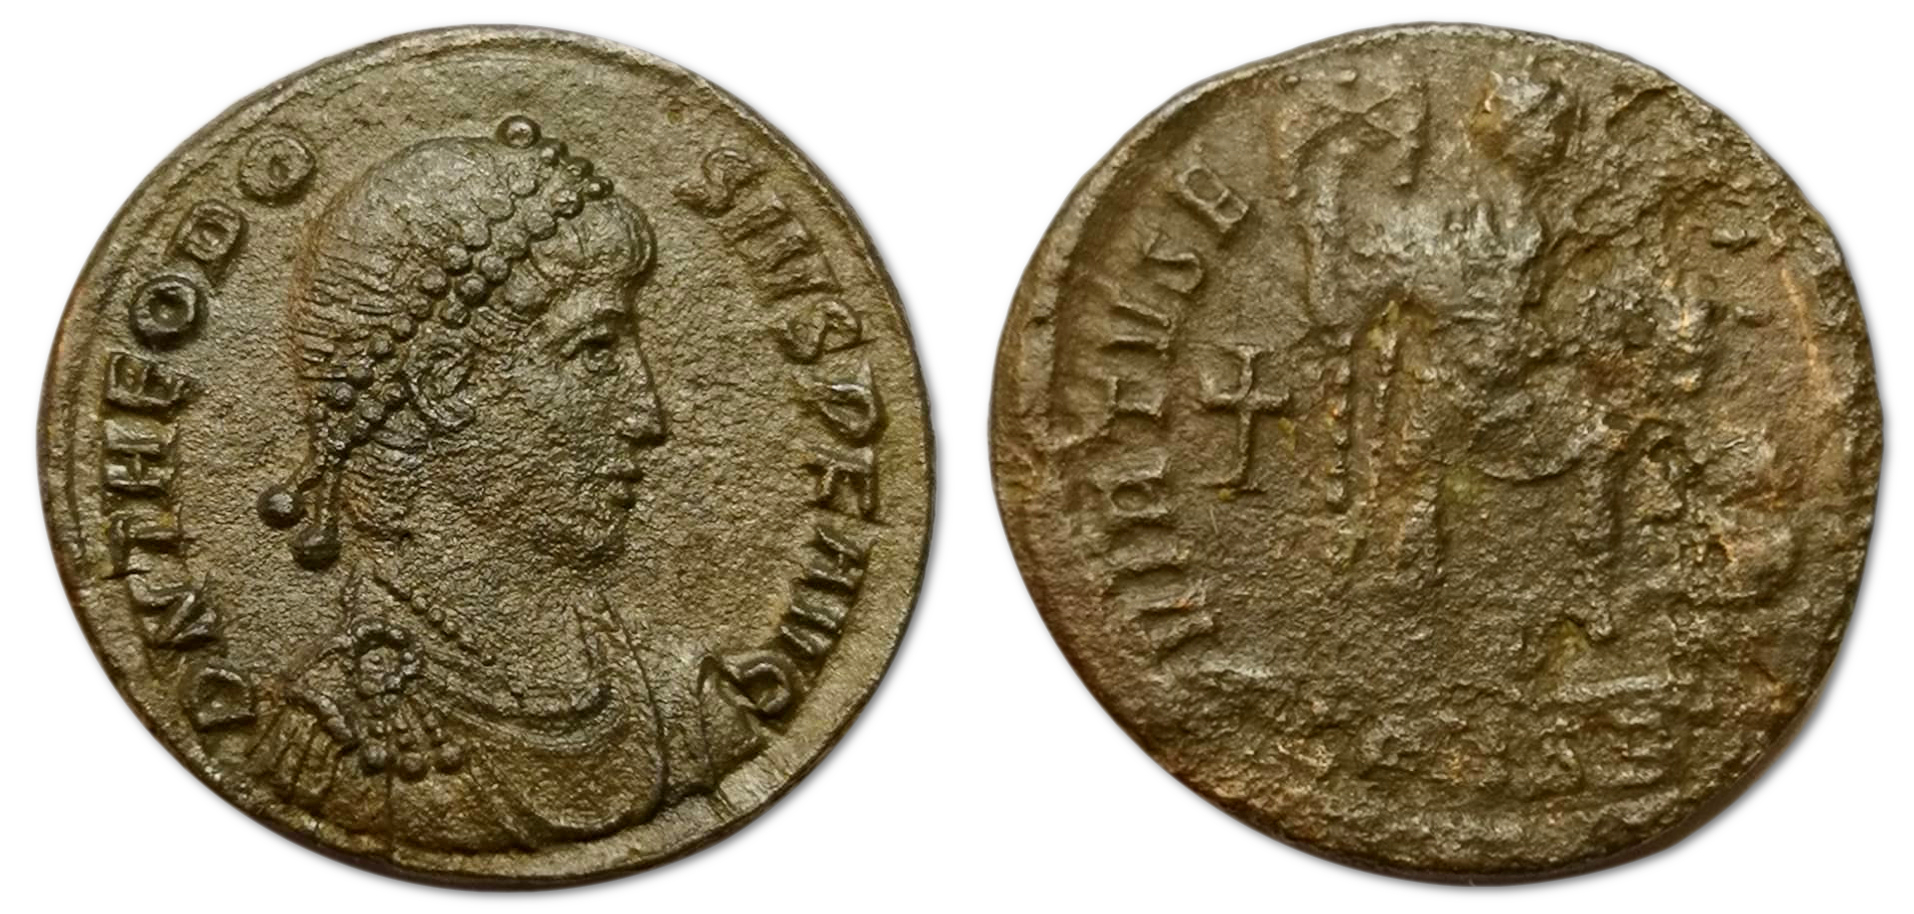 /Files/Images/Coinsite/CoinDB/Theodosius(0)(0).jpg